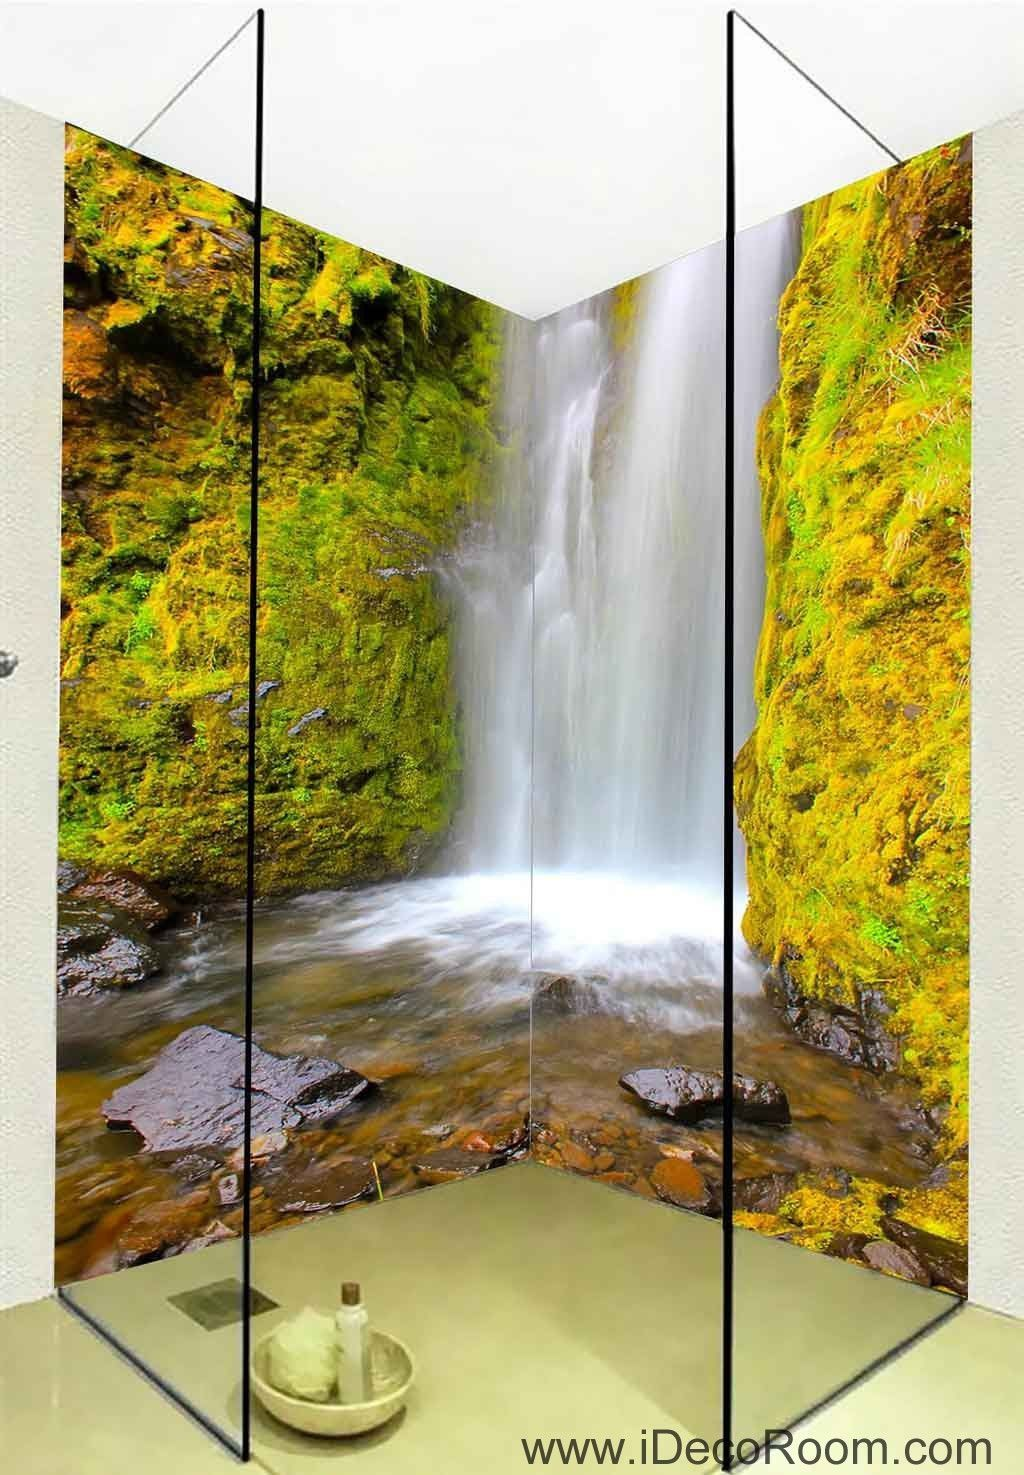 Wallpaper Murals For Bathrooms 3d Wallpaper Waterfall Rocks Wall Murals Bathroom Decals Wall Art